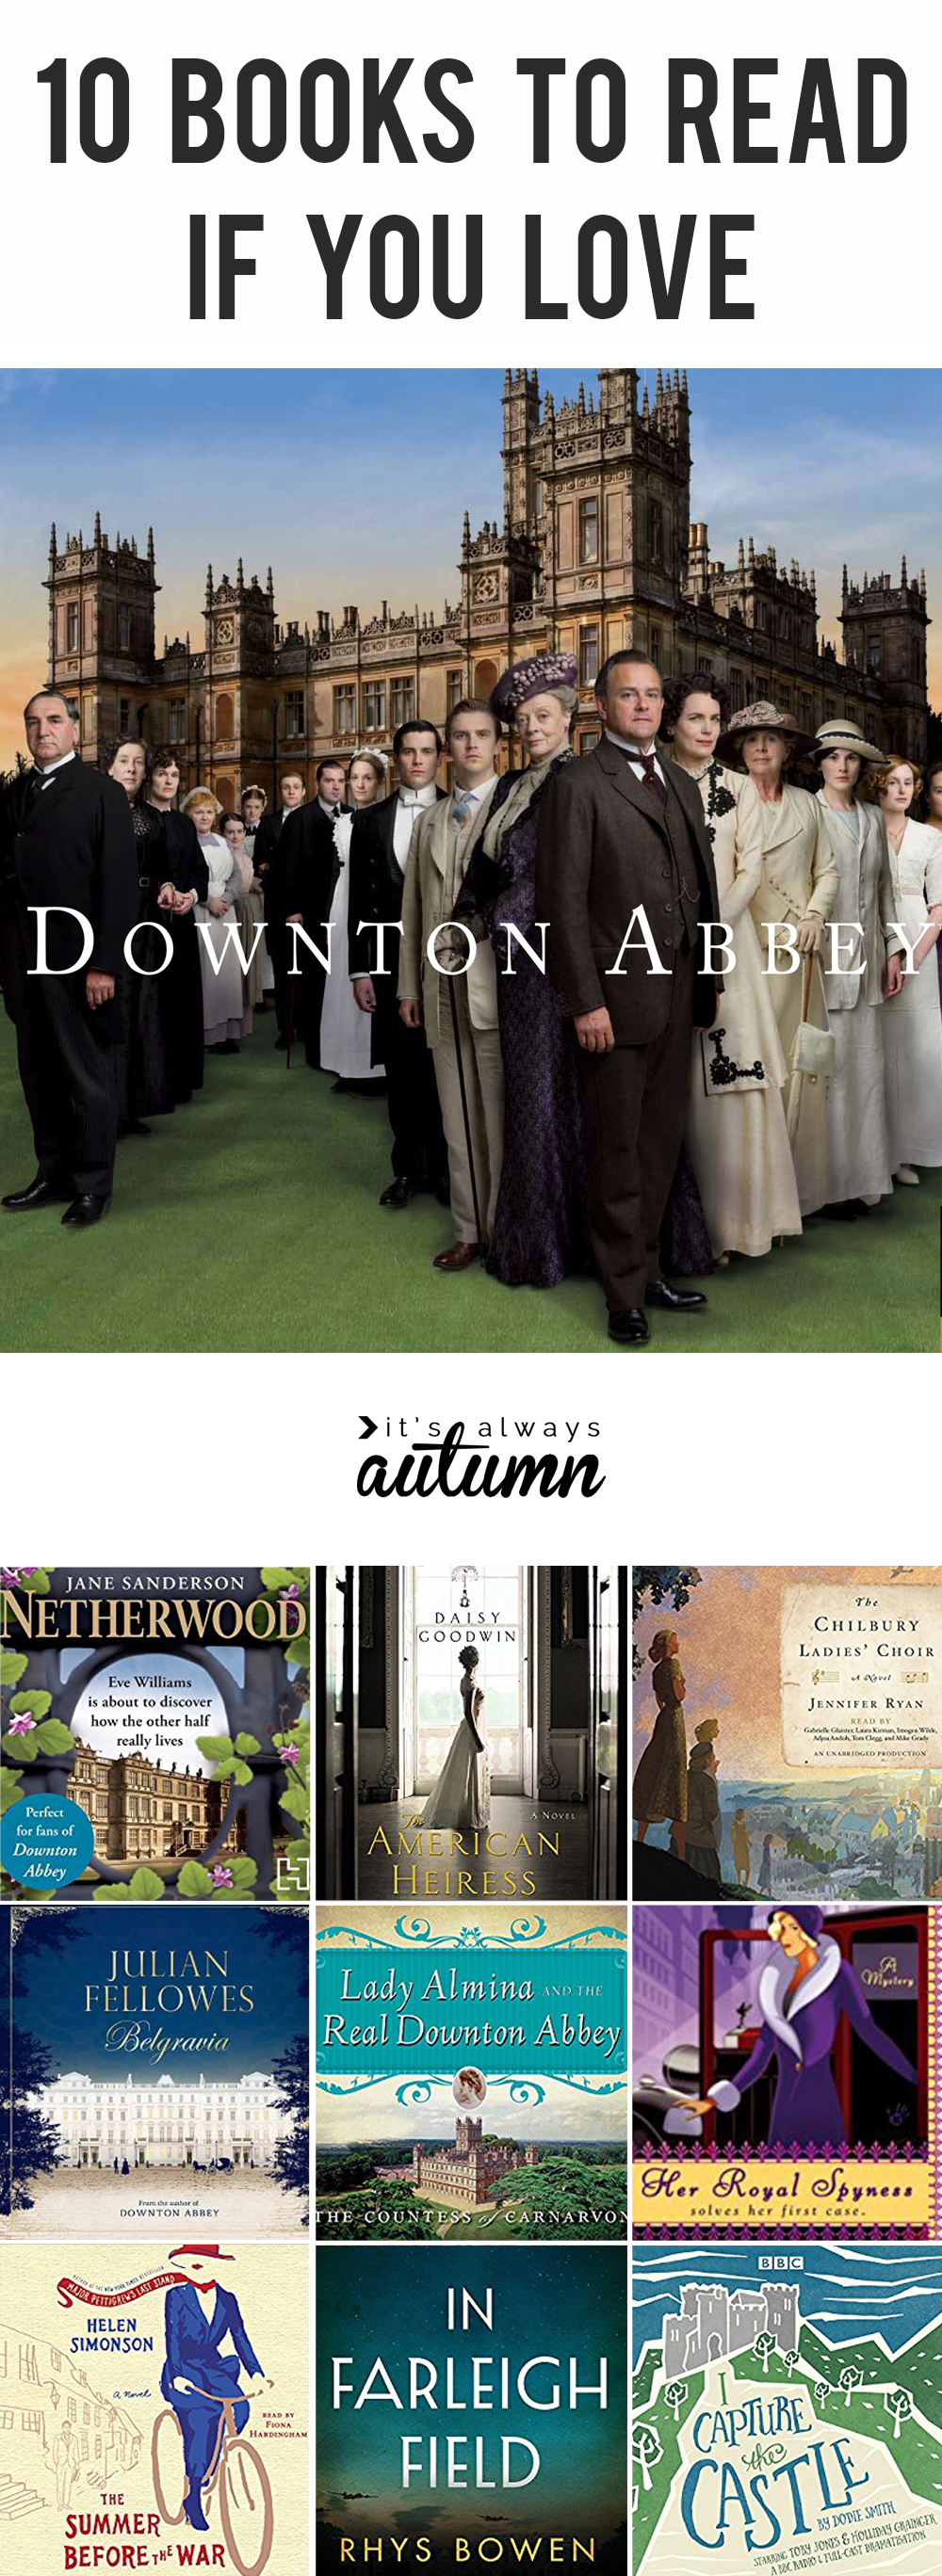 Books to read if you love Downton Abbey! Great list of books like Downton Abbey.